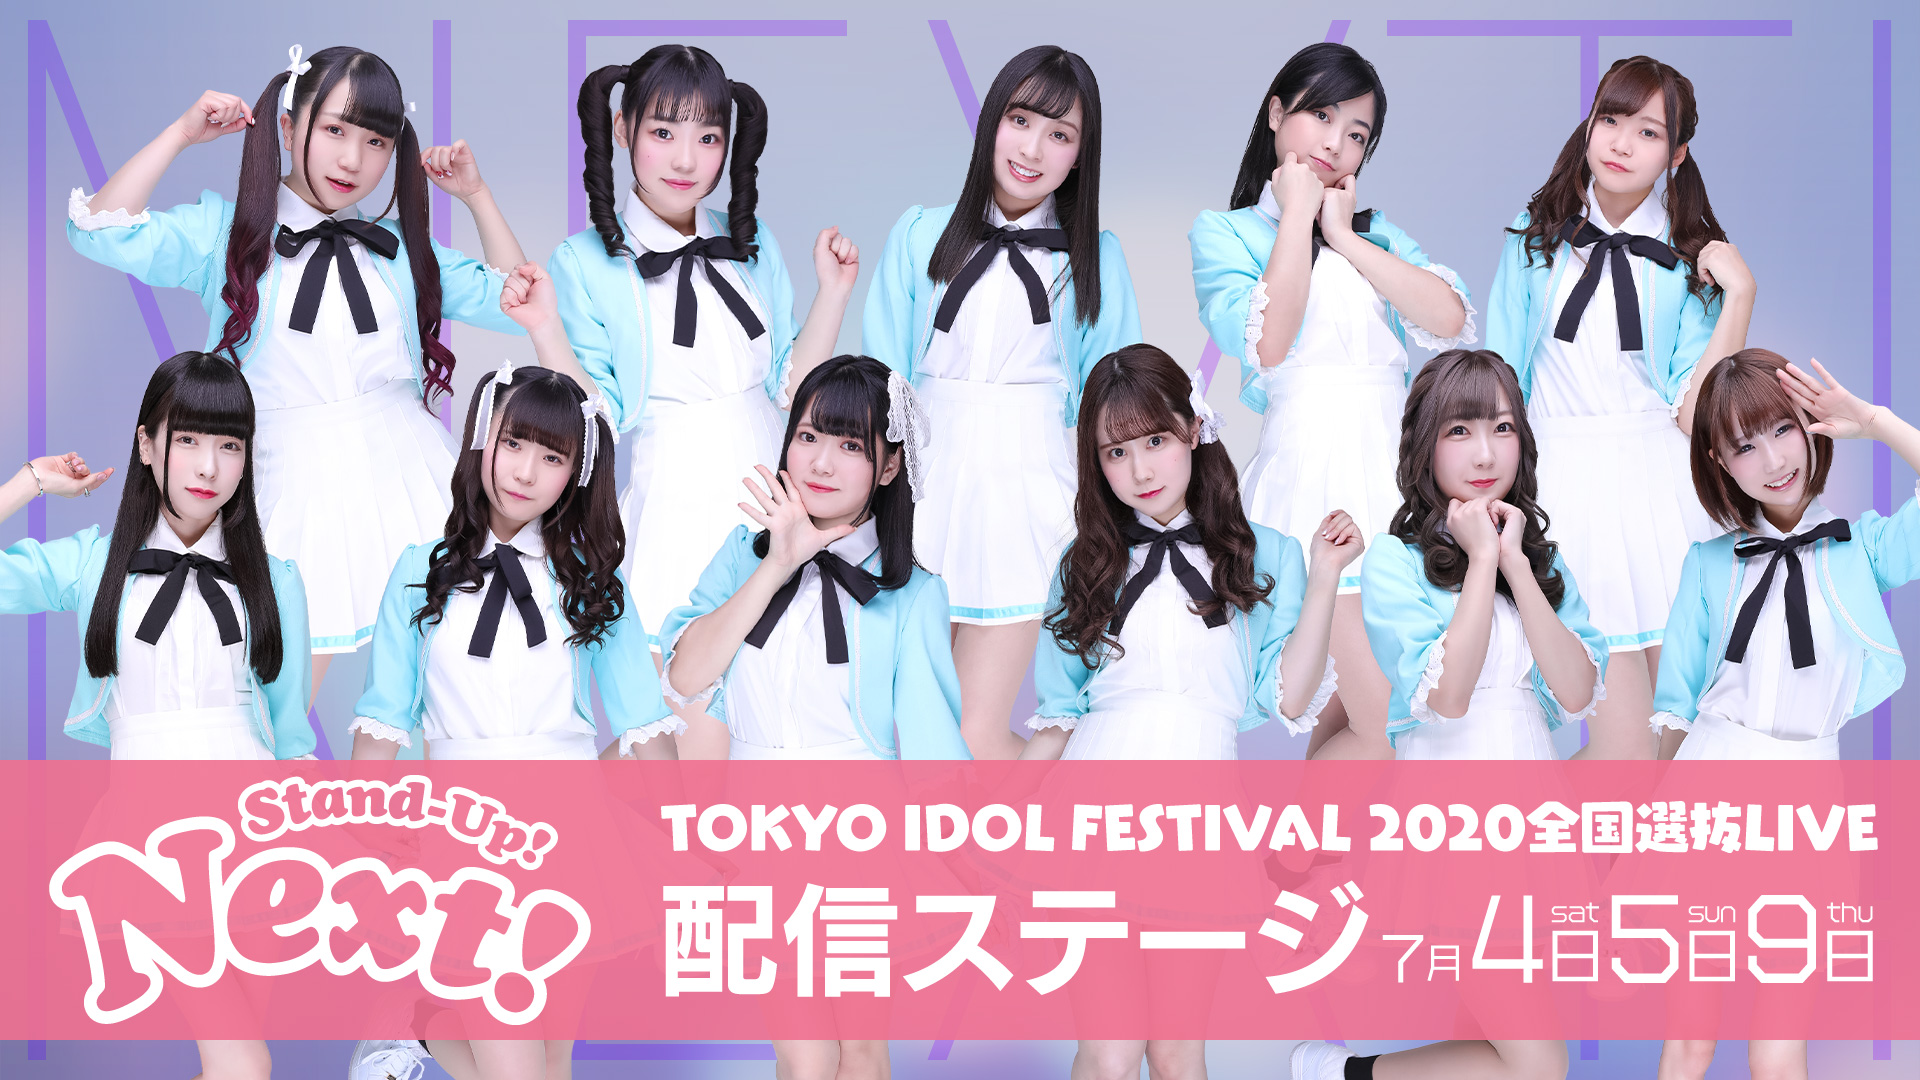 Stand-Up! Next! [TIF2020全国選抜LIVE・配信ステージ]